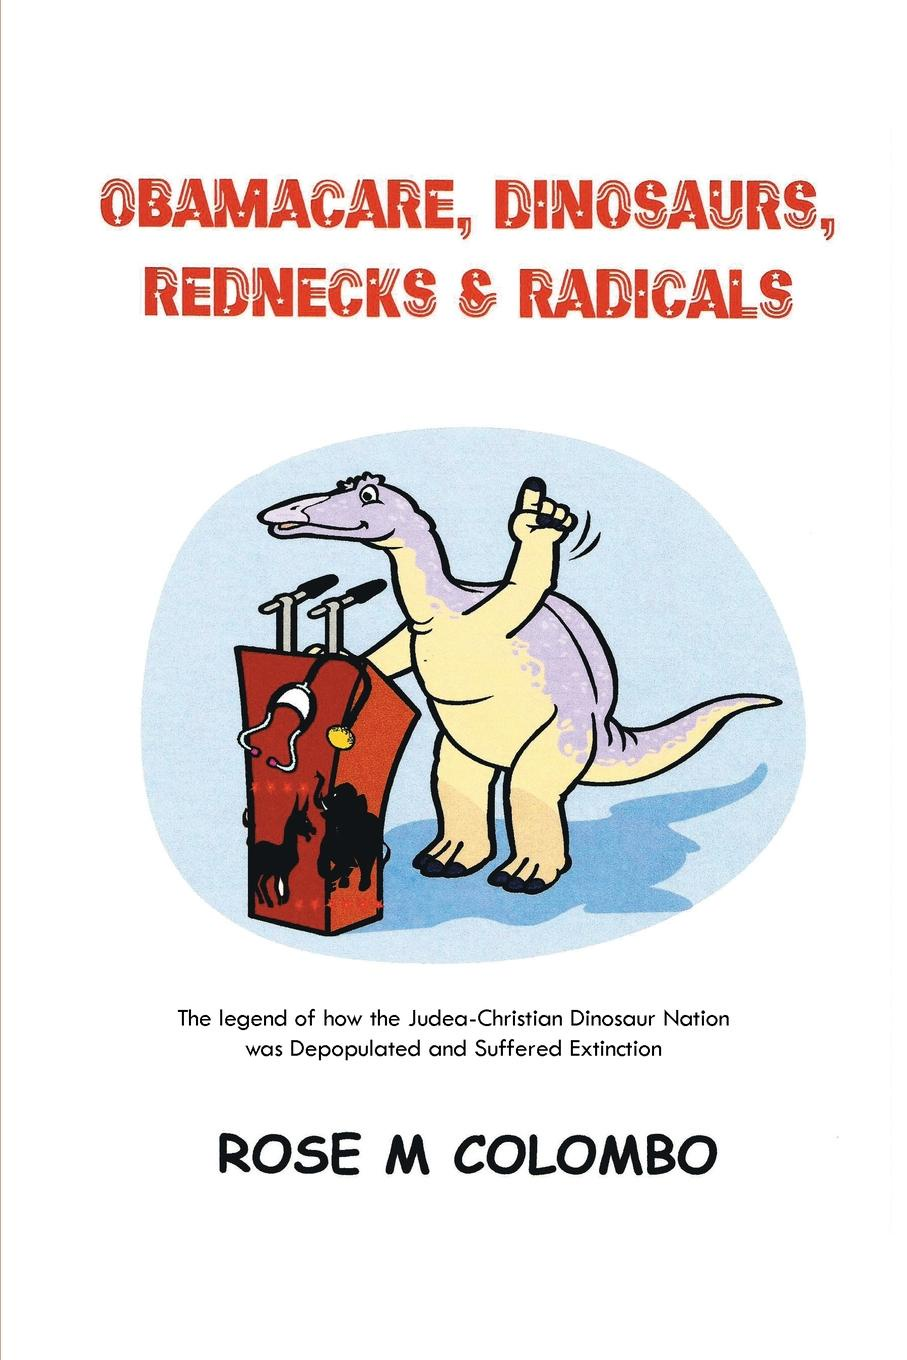 Rose M. Colombo Obamacare, Dinosaurs, Red Necks, and Radicals. The legend of how the Judea-Christian Dinosaur Nation was Depopulated and Suffered Extinction radicals